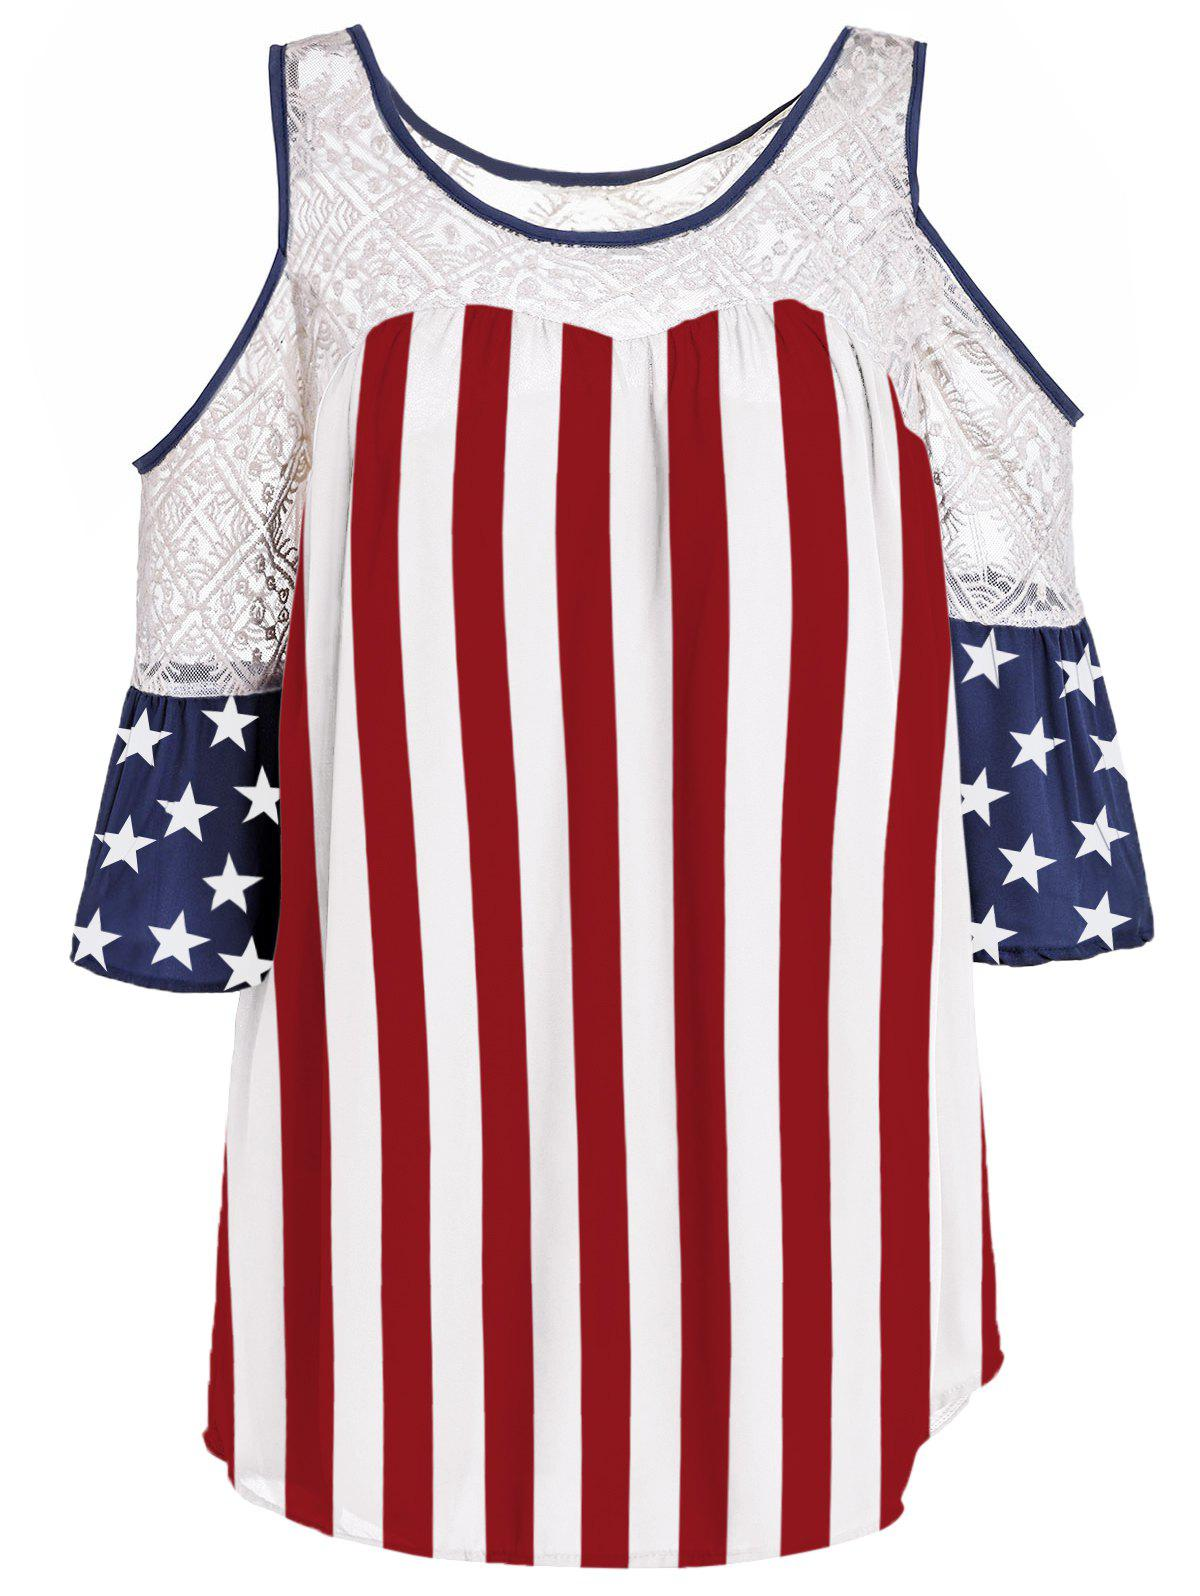 Lace Spliced Cold Shoulder Flag Pattern T-Shirt - RED/WHITE/BLUE XL